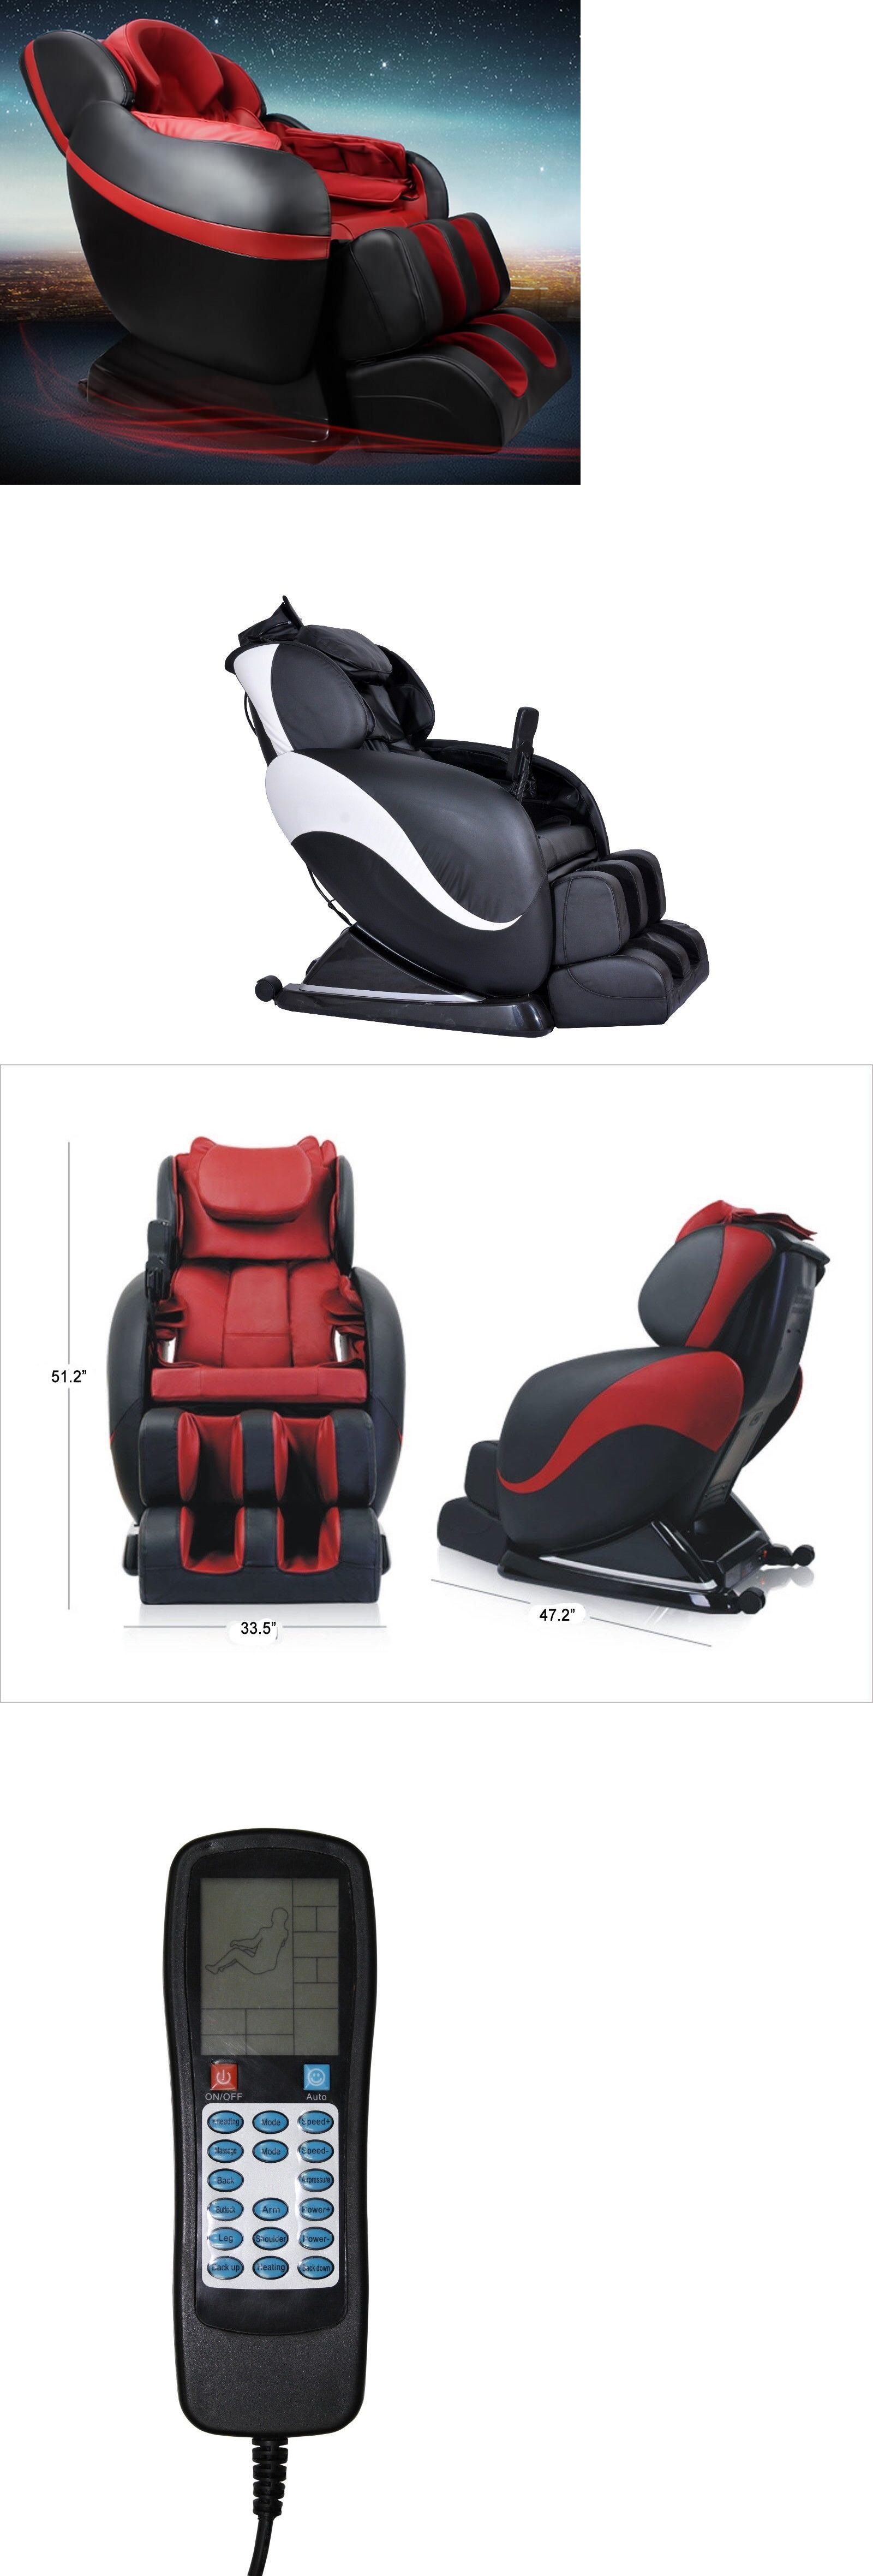 Electric Massage Chairs M bo Domestic Systemic Multi Function